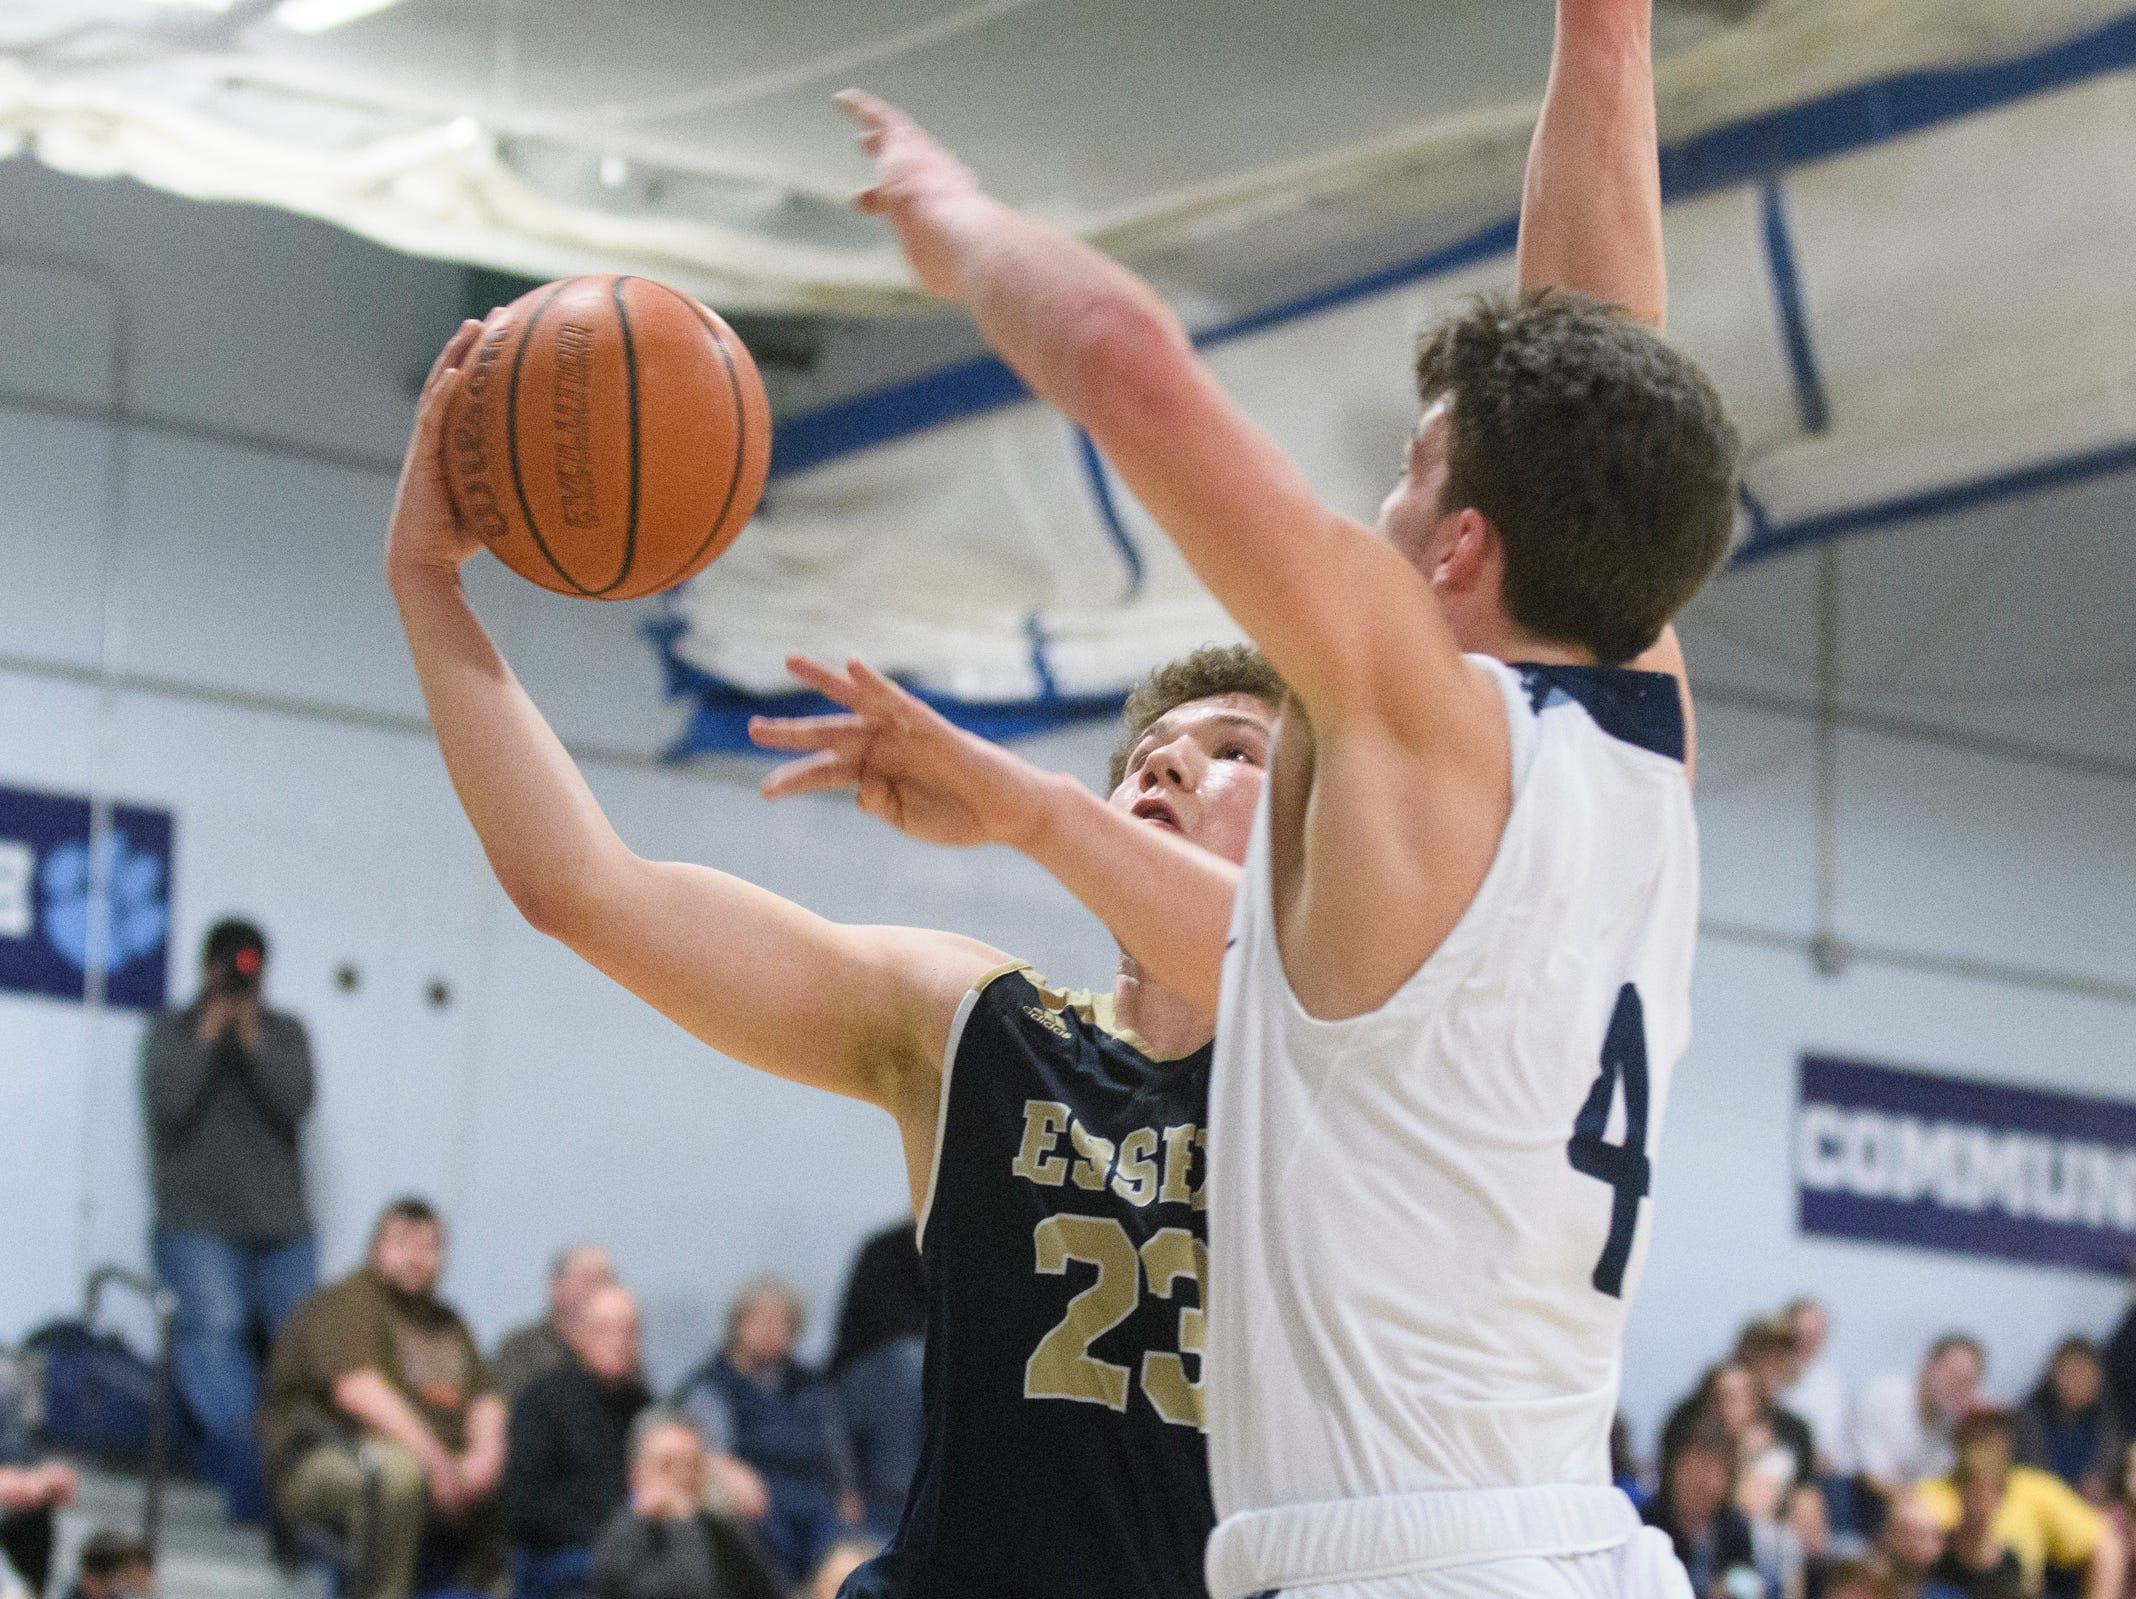 Essex's Anthony Decarvalho (23) leaps past MMU's Harrison Leombruno-Nicholson (4) for a lay up during the boys basketball game between the Essex Hornets and the Mount Mansfield Cougars at MMU High School on Wednesday night February 13, 2019 in Jericho, Vermont.